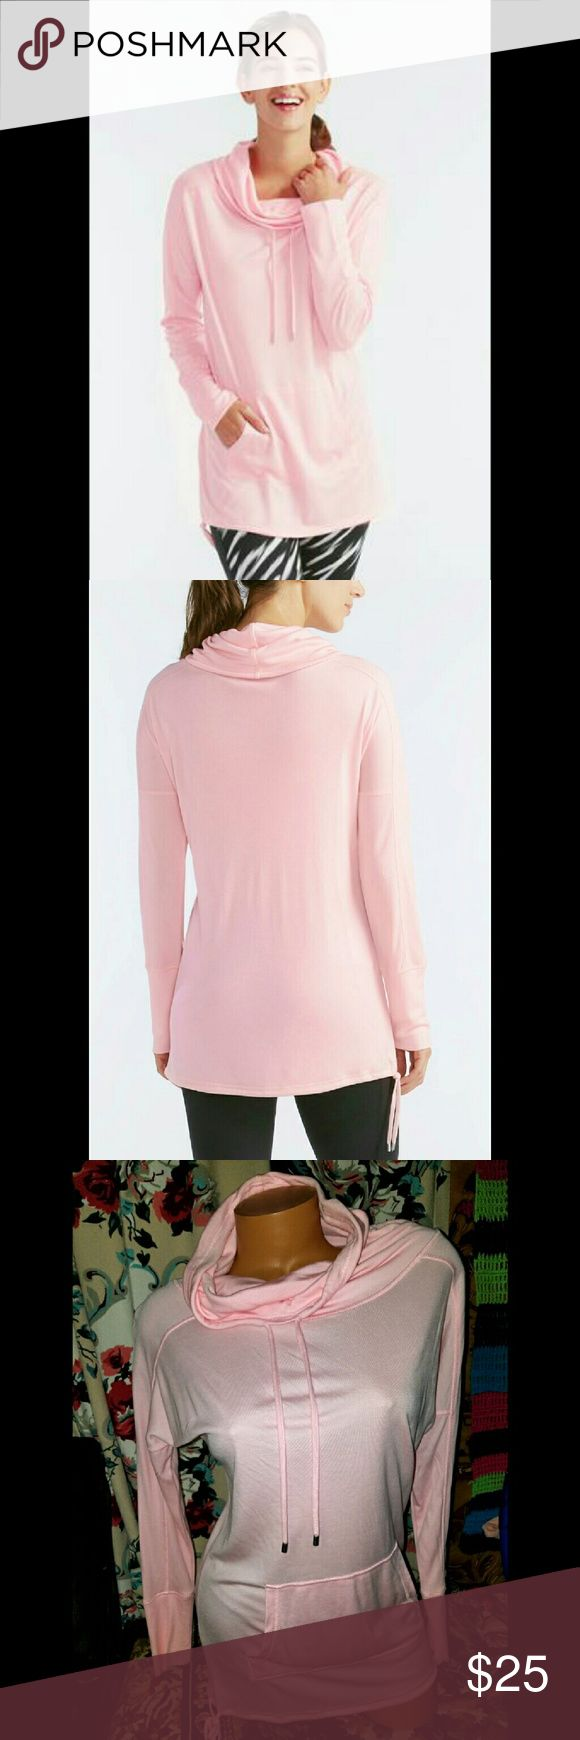 Sz XS Pink Cowl Neck Drawstring sweatshirt Fits 2-4 Never worn Fashion and function collide in this athleisure sweatshirt, featuring a soft knit fabrication, drawstring cowl neckline and front kangaroo pocket.    If you have aby questions please ask. Tags for exposure: Vs Victoria's Secret pink Athleisure Althletics gym comfy cute girly sweater forever21 charlotte russe h&m express Catos Sweaters